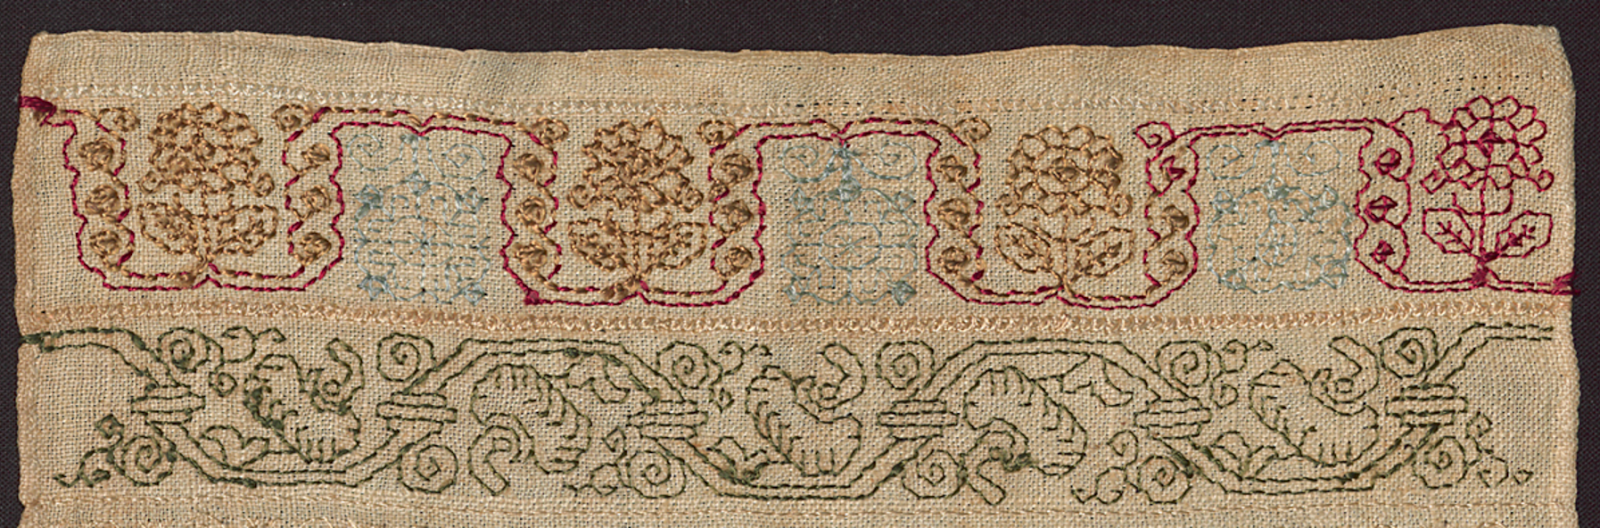 Embroidery history